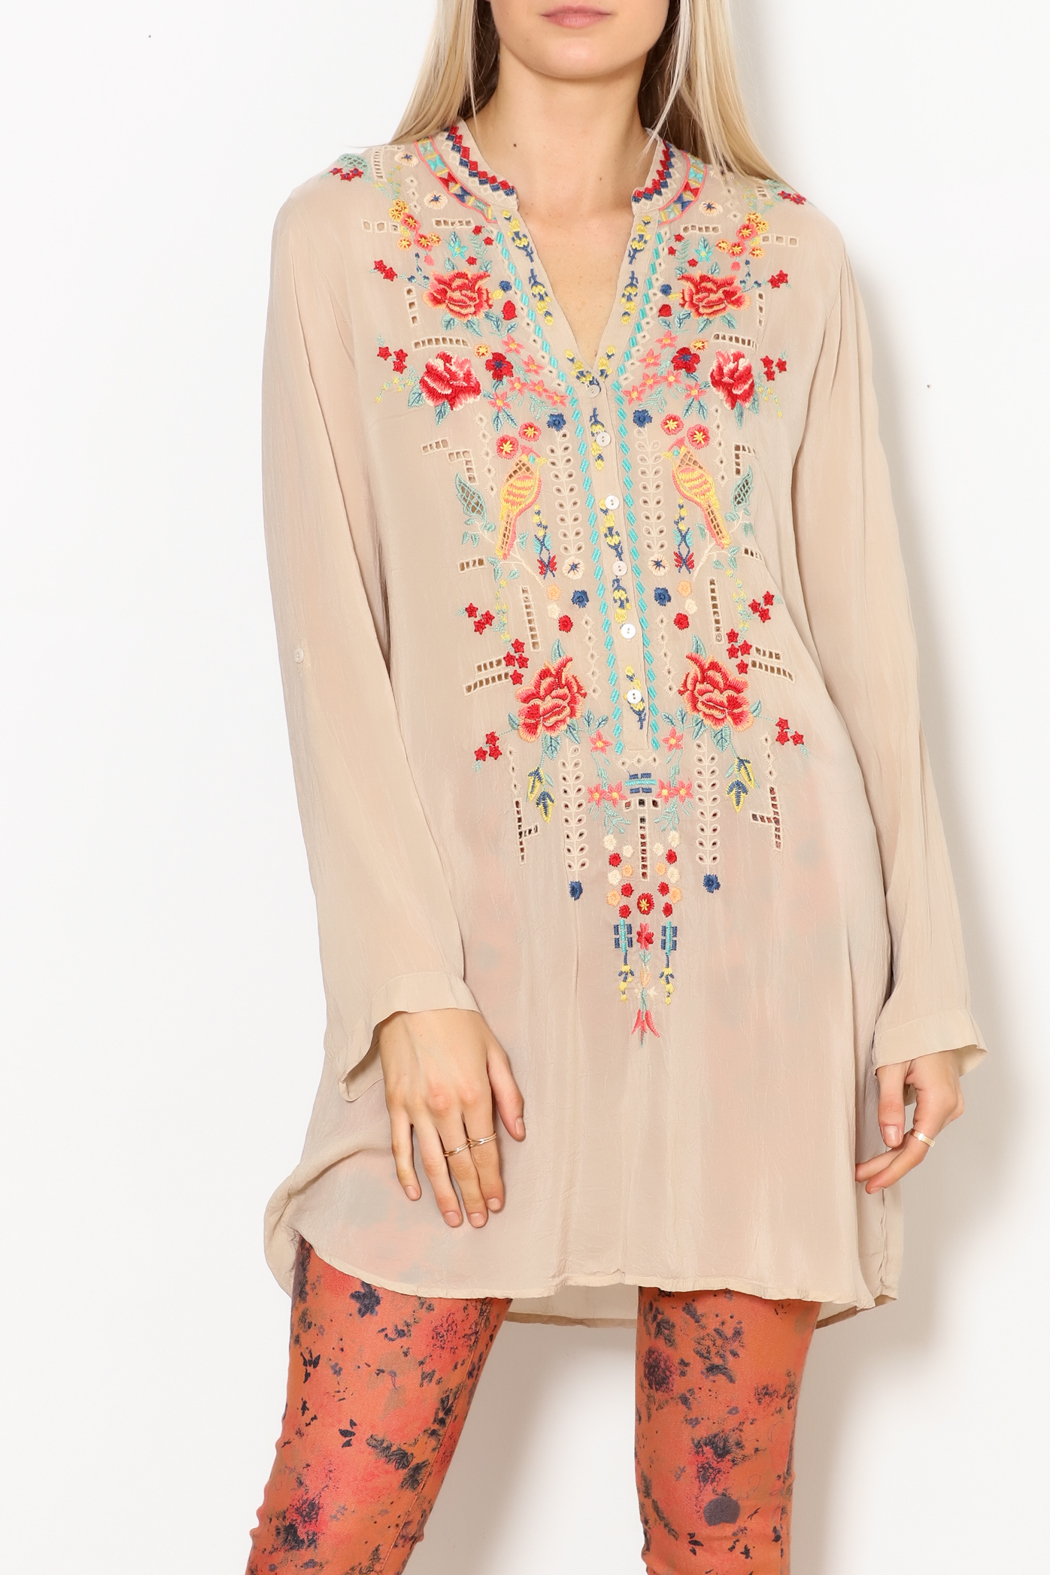 Johnny Was Eyelet Garden Tunic - Front Full Image